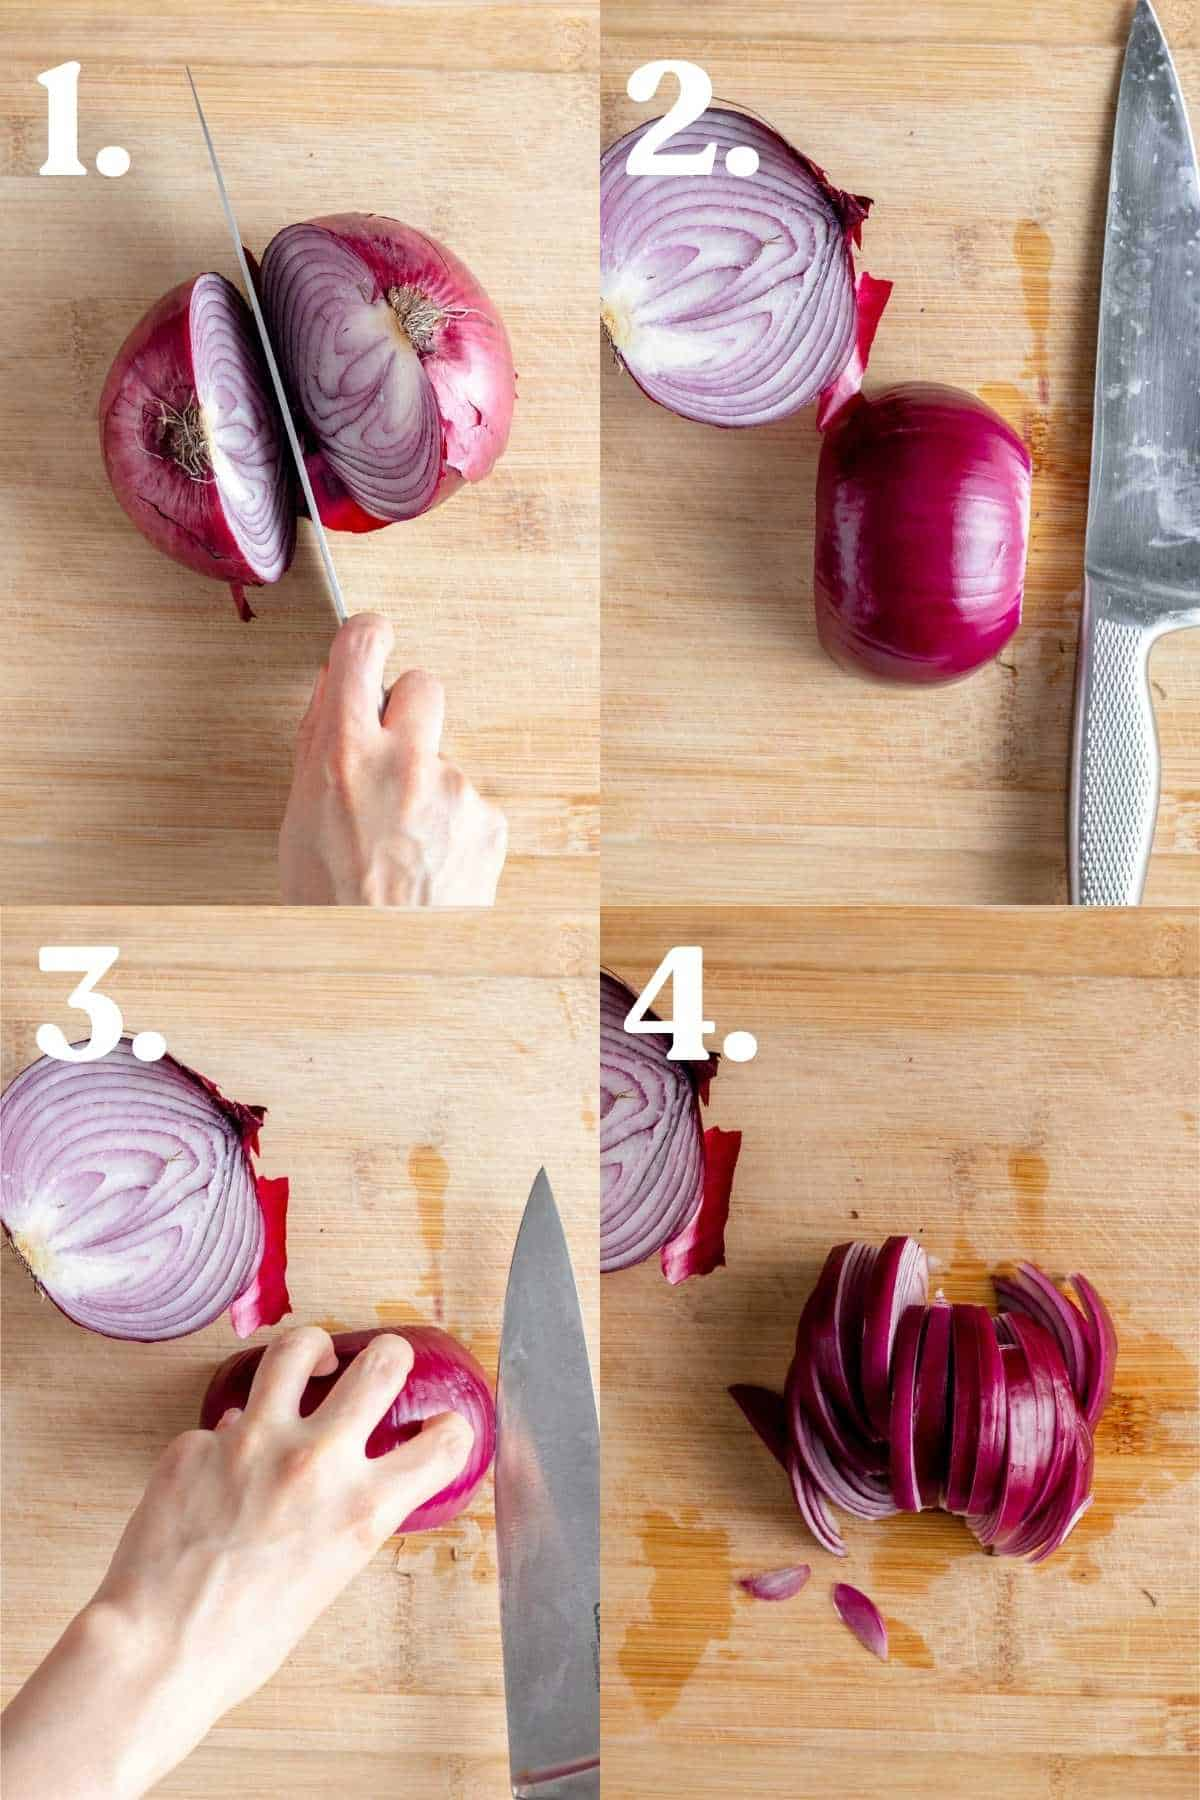 Step by step process showing how to slice an onion into strips.